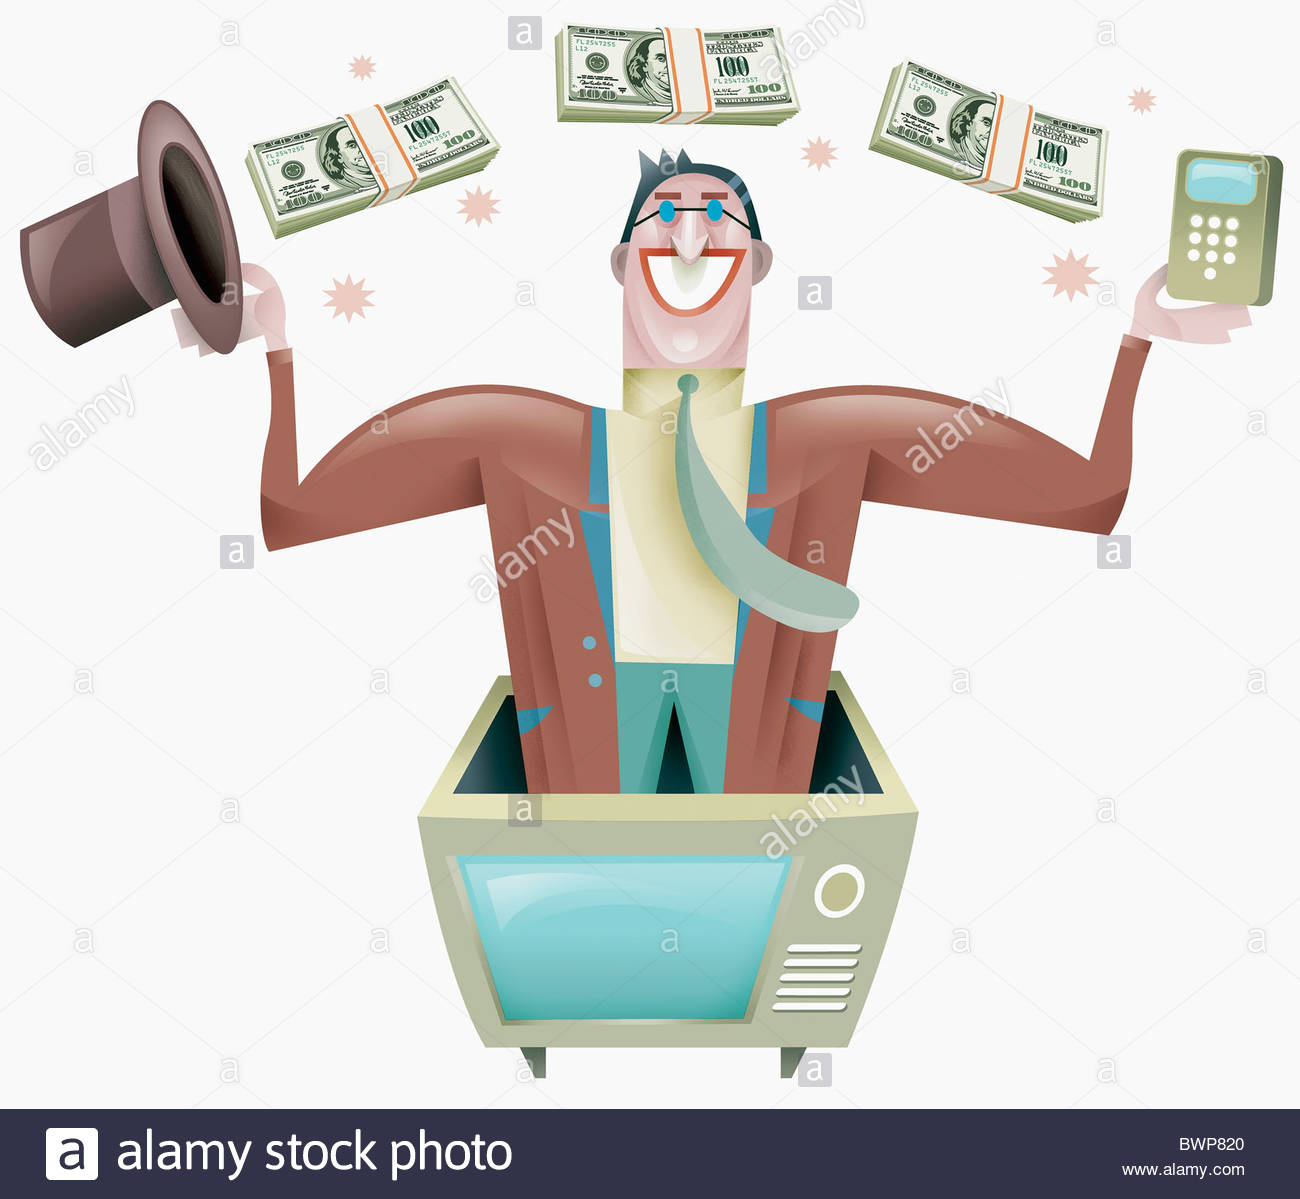 Magician standing in television with money floating overhead - Stock Image